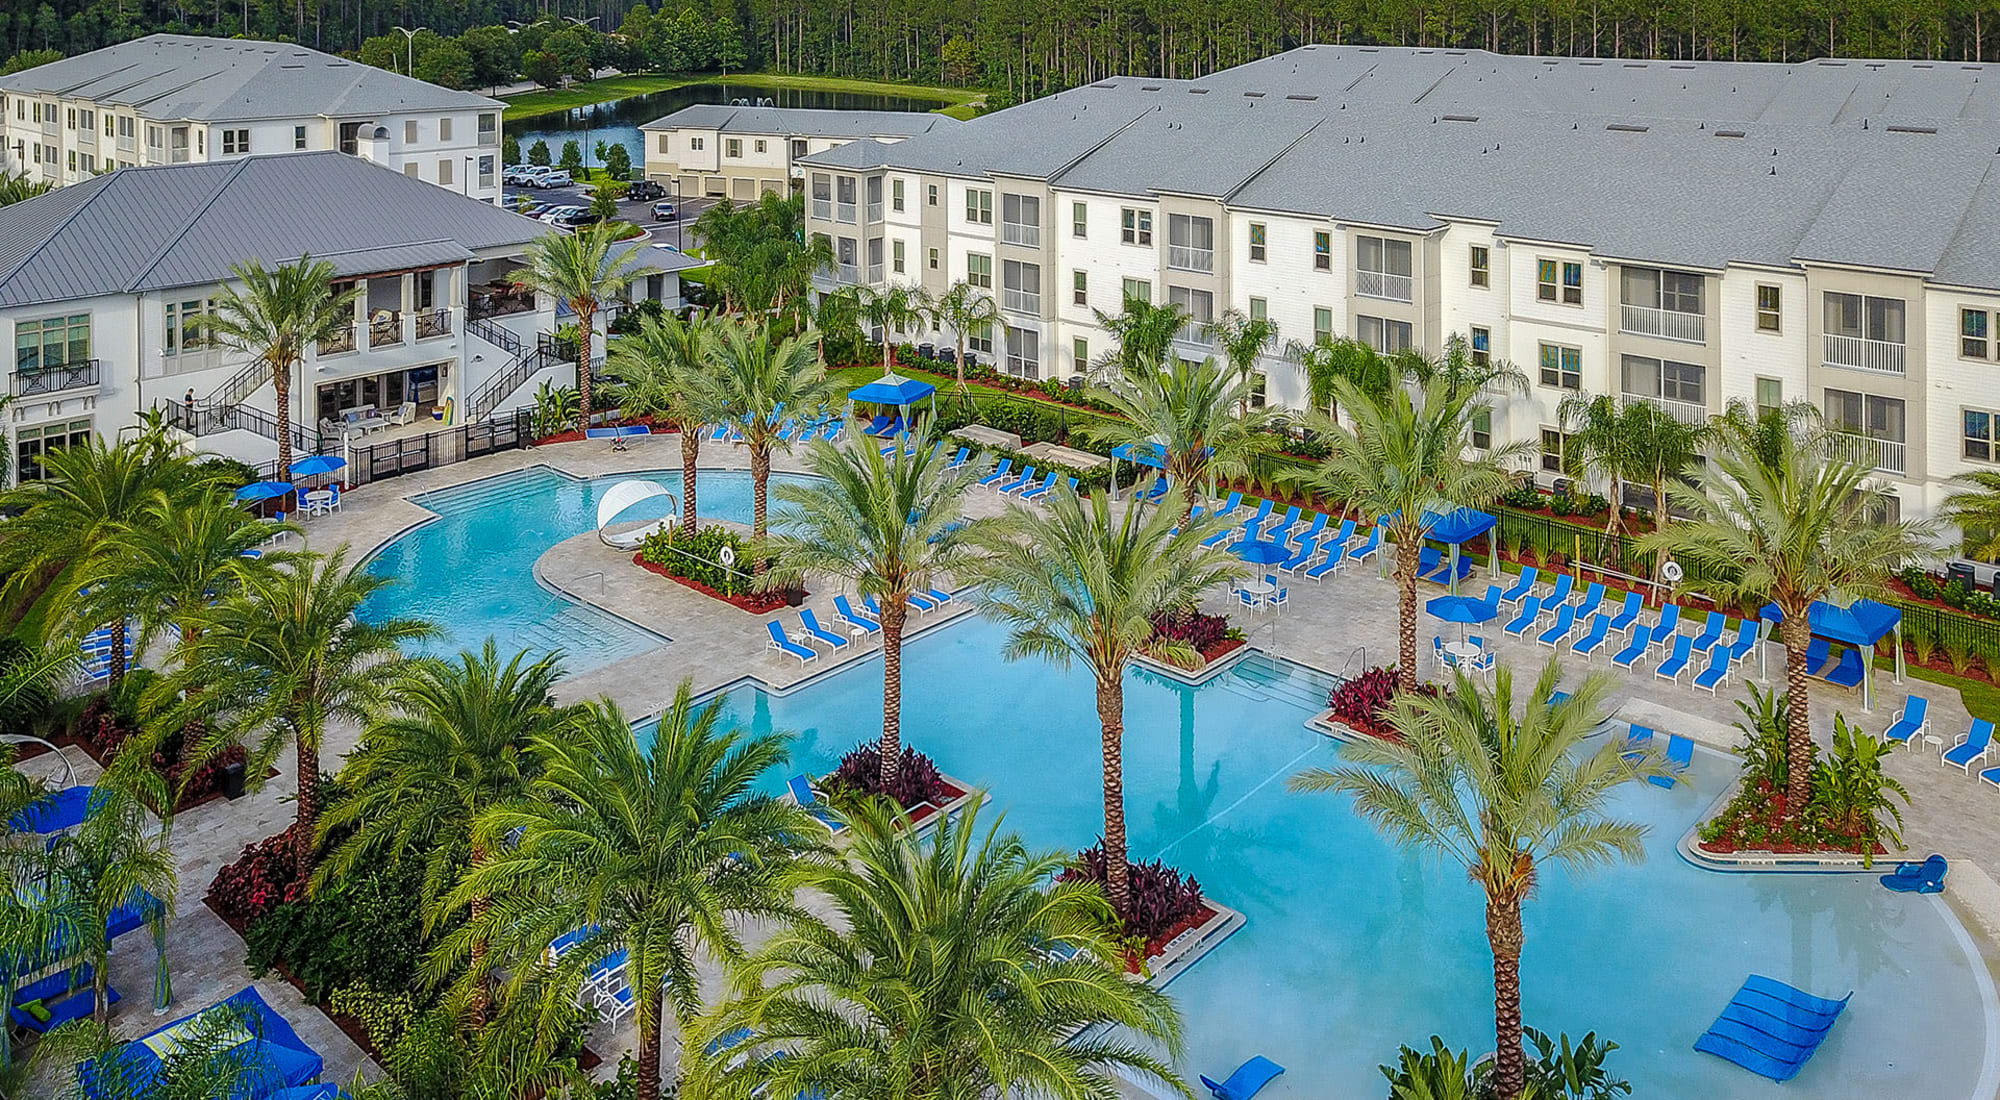 Apartments at Palm Bay Club in Jacksonville, Florida